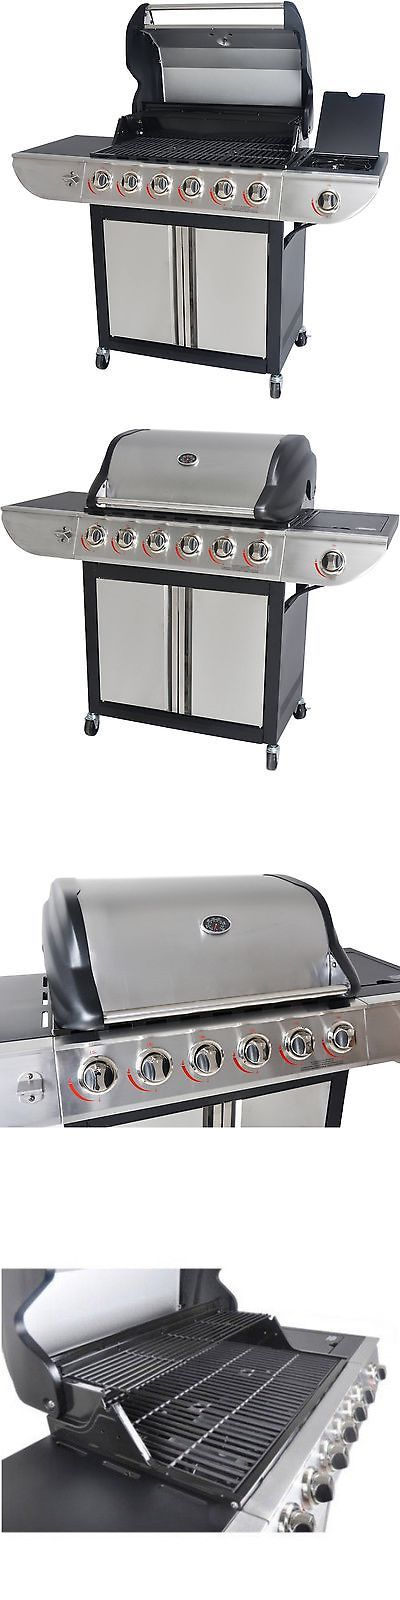 Barbecues Grills and Smokers 151621: Gas Grill 6 Burner Stainless Steel Barbecue Large Bbq Propane Outdoor Side New -> BUY IT NOW ONLY: $276.95 on eBay!